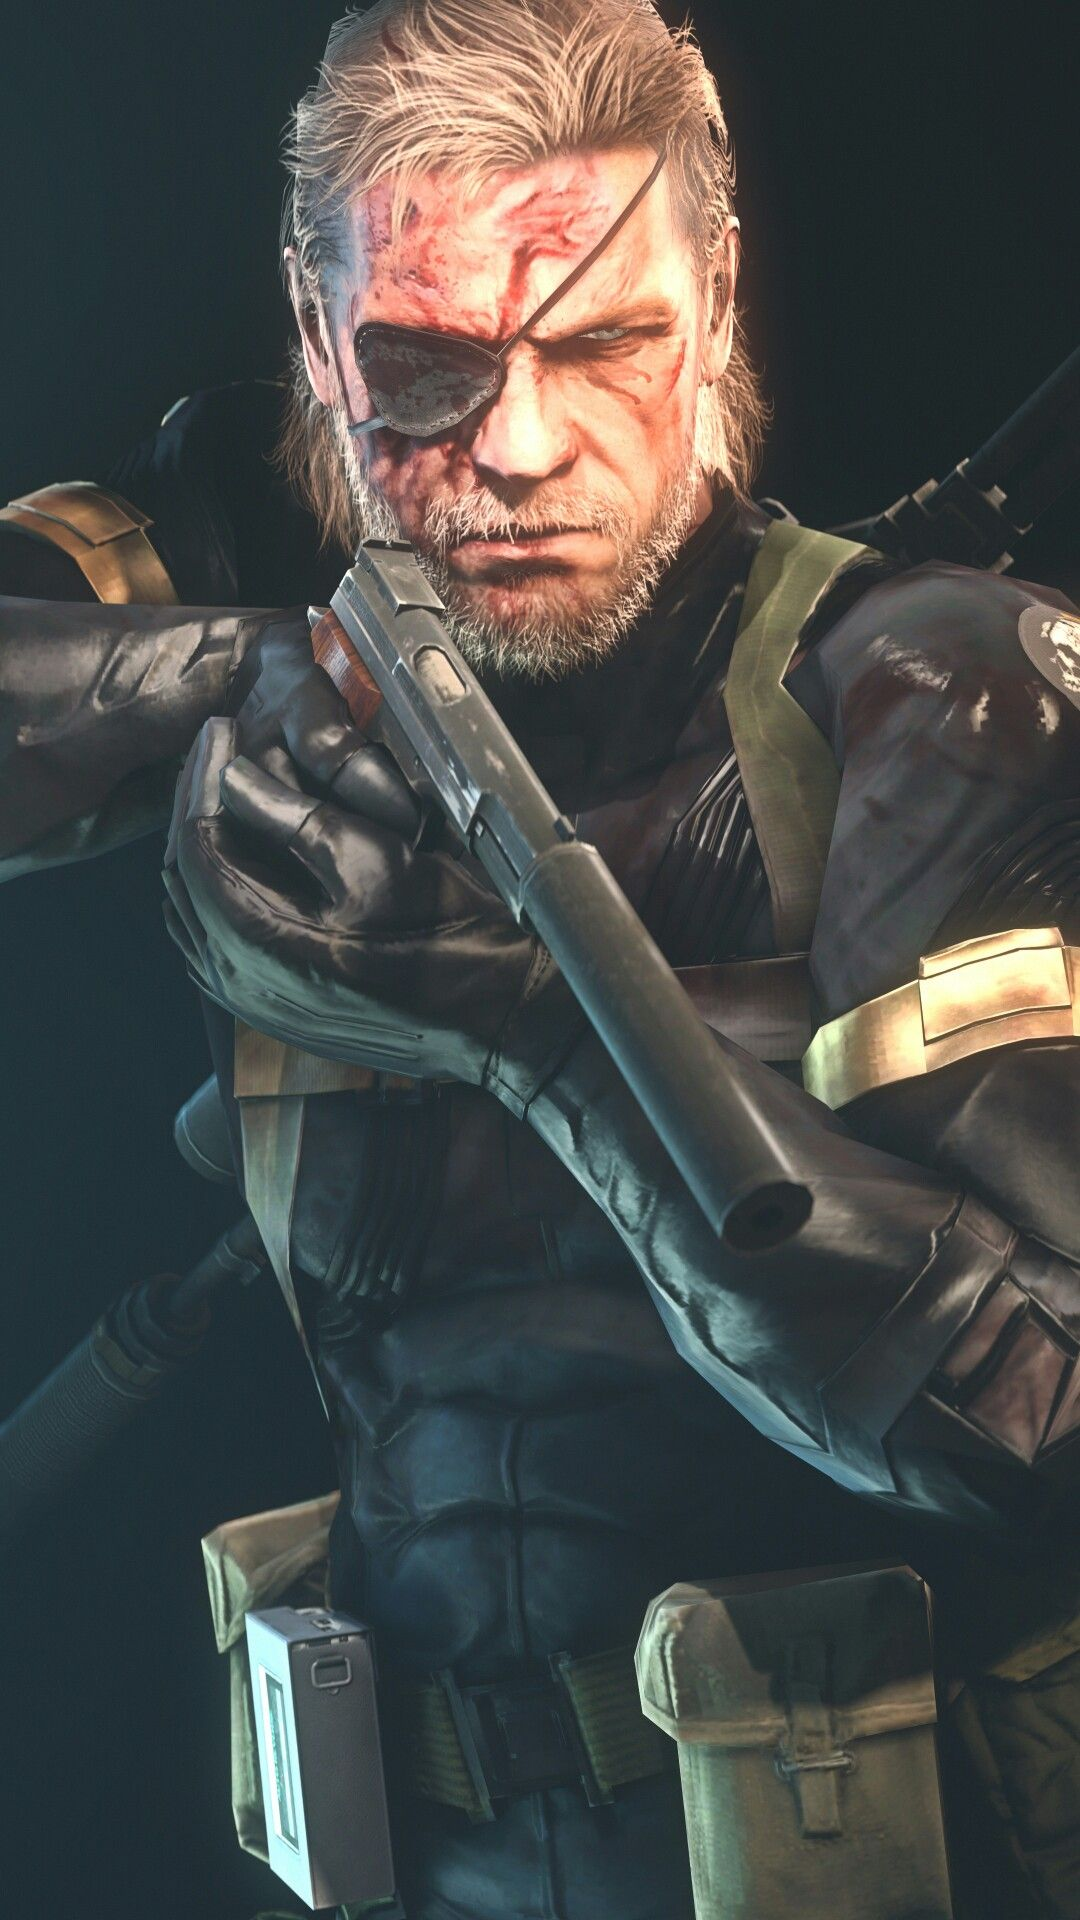 Big Boss Hd Mgs Metalgearsolidv Mgsv Groundzeroes Snake